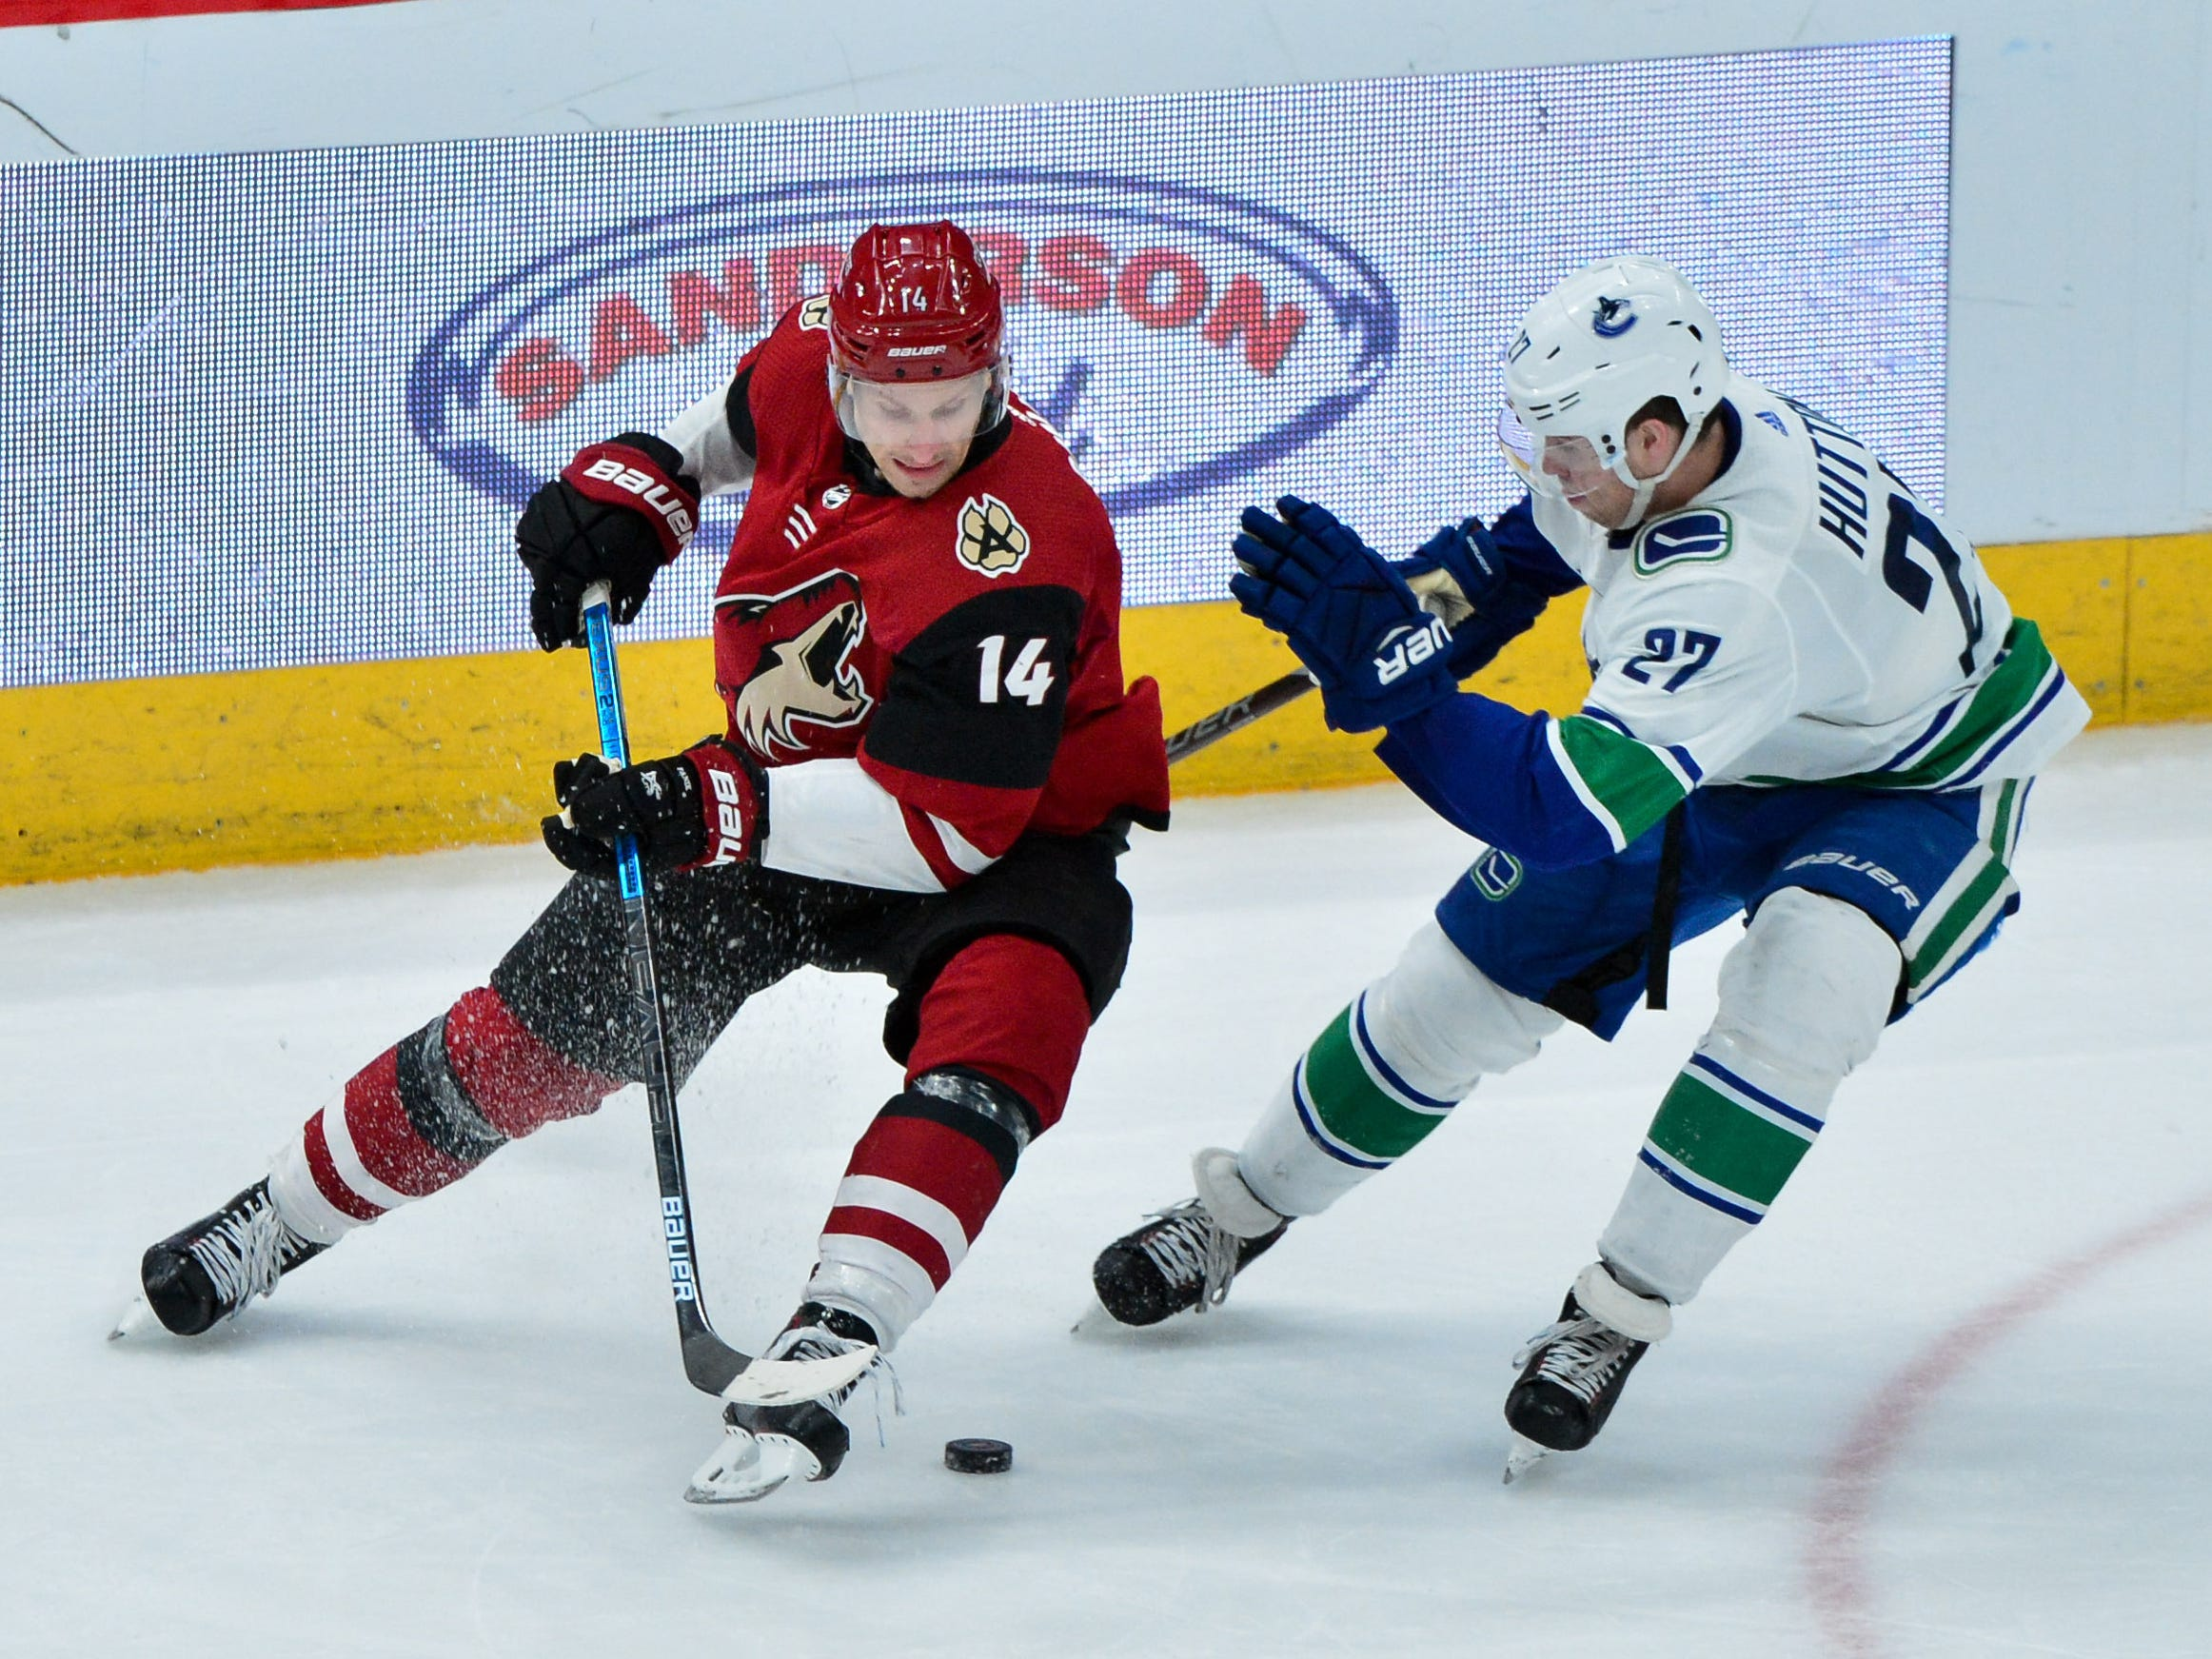 Feb 28, 2019; Glendale, AZ, USA; Arizona Coyotes right wing Richard Panik (14) skates with the puck against the Vancouver Canucks during the third period at Gila River Arena.